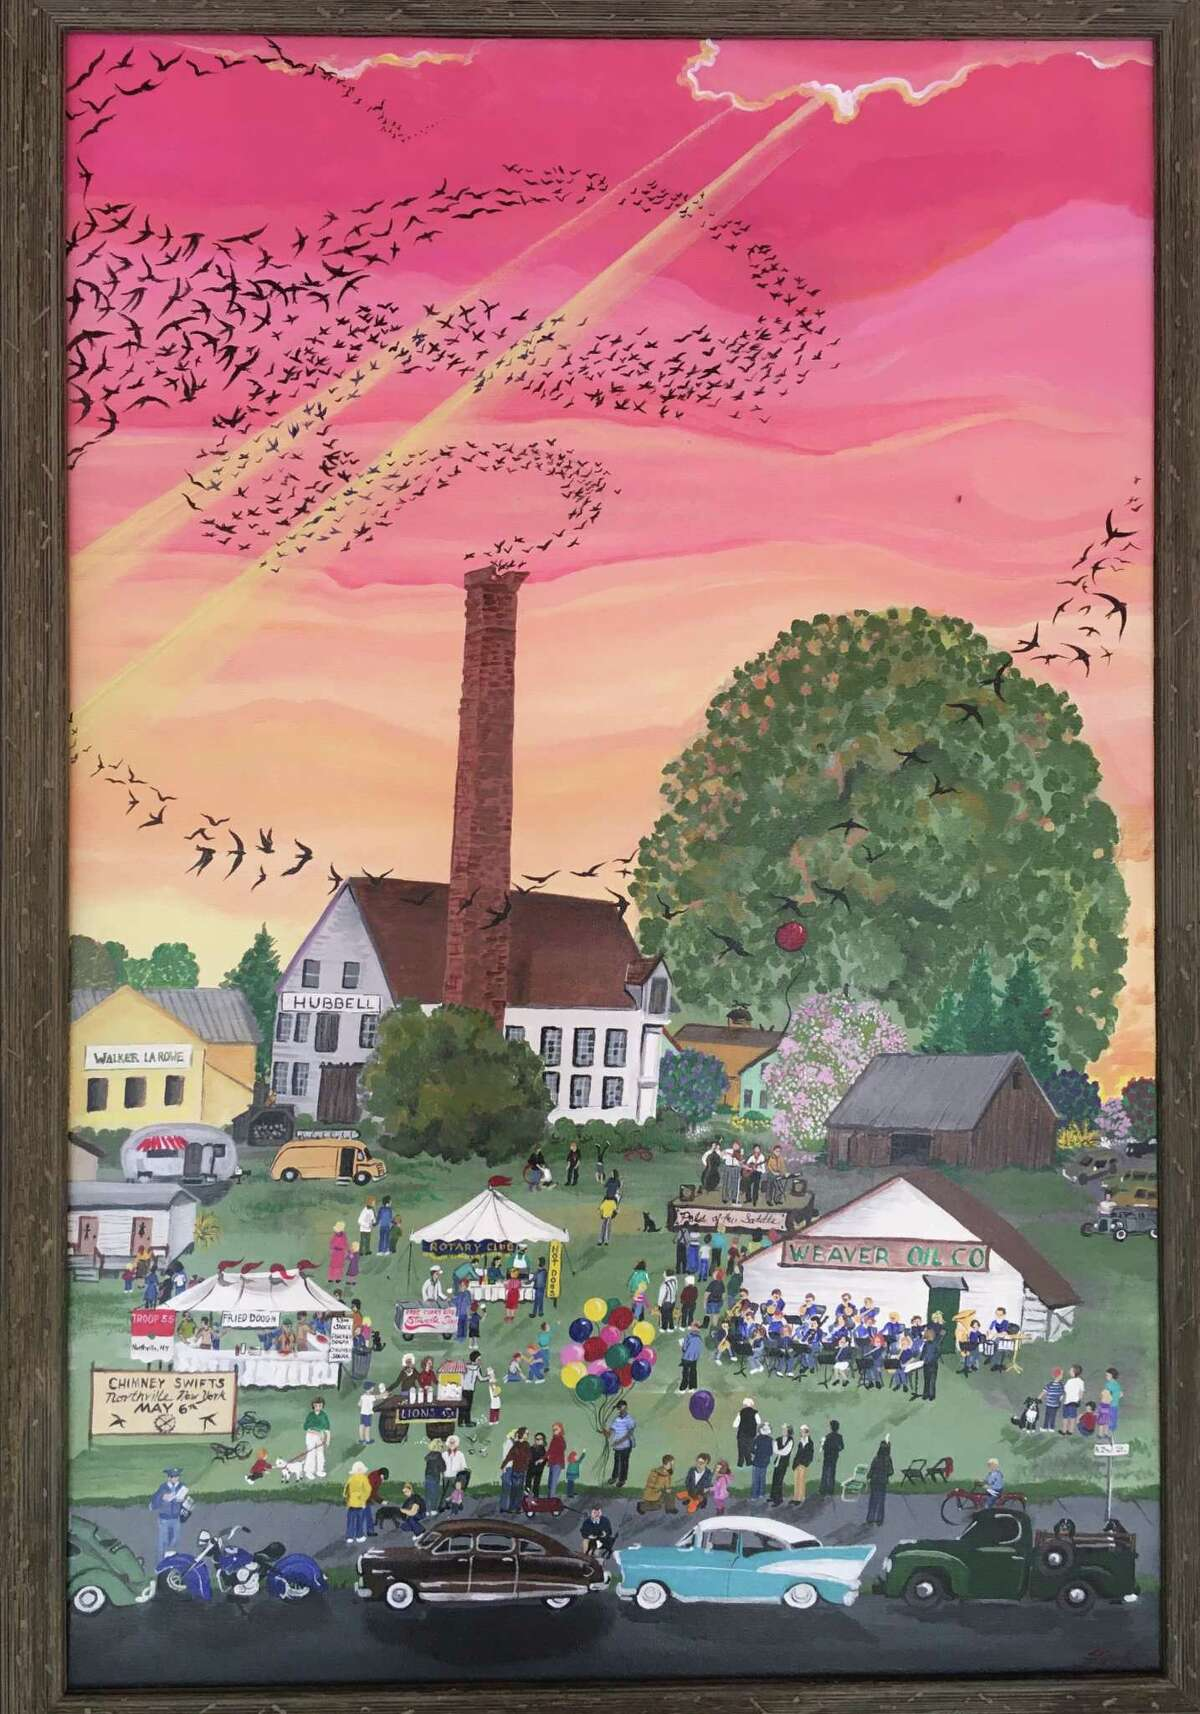 Linda Fitch, a Northville artist who recently received a New York State Council on the Arts grant through the Saratoga Arts Center, is completing a series of local folk art work. Depicted here is how swifts from Peru made their 6,000-mile journey to the village's Hubbell Chimney, arriving every May 6. The chimney is no longer there, but many people remember the festivities that signaled the beginning of summer.